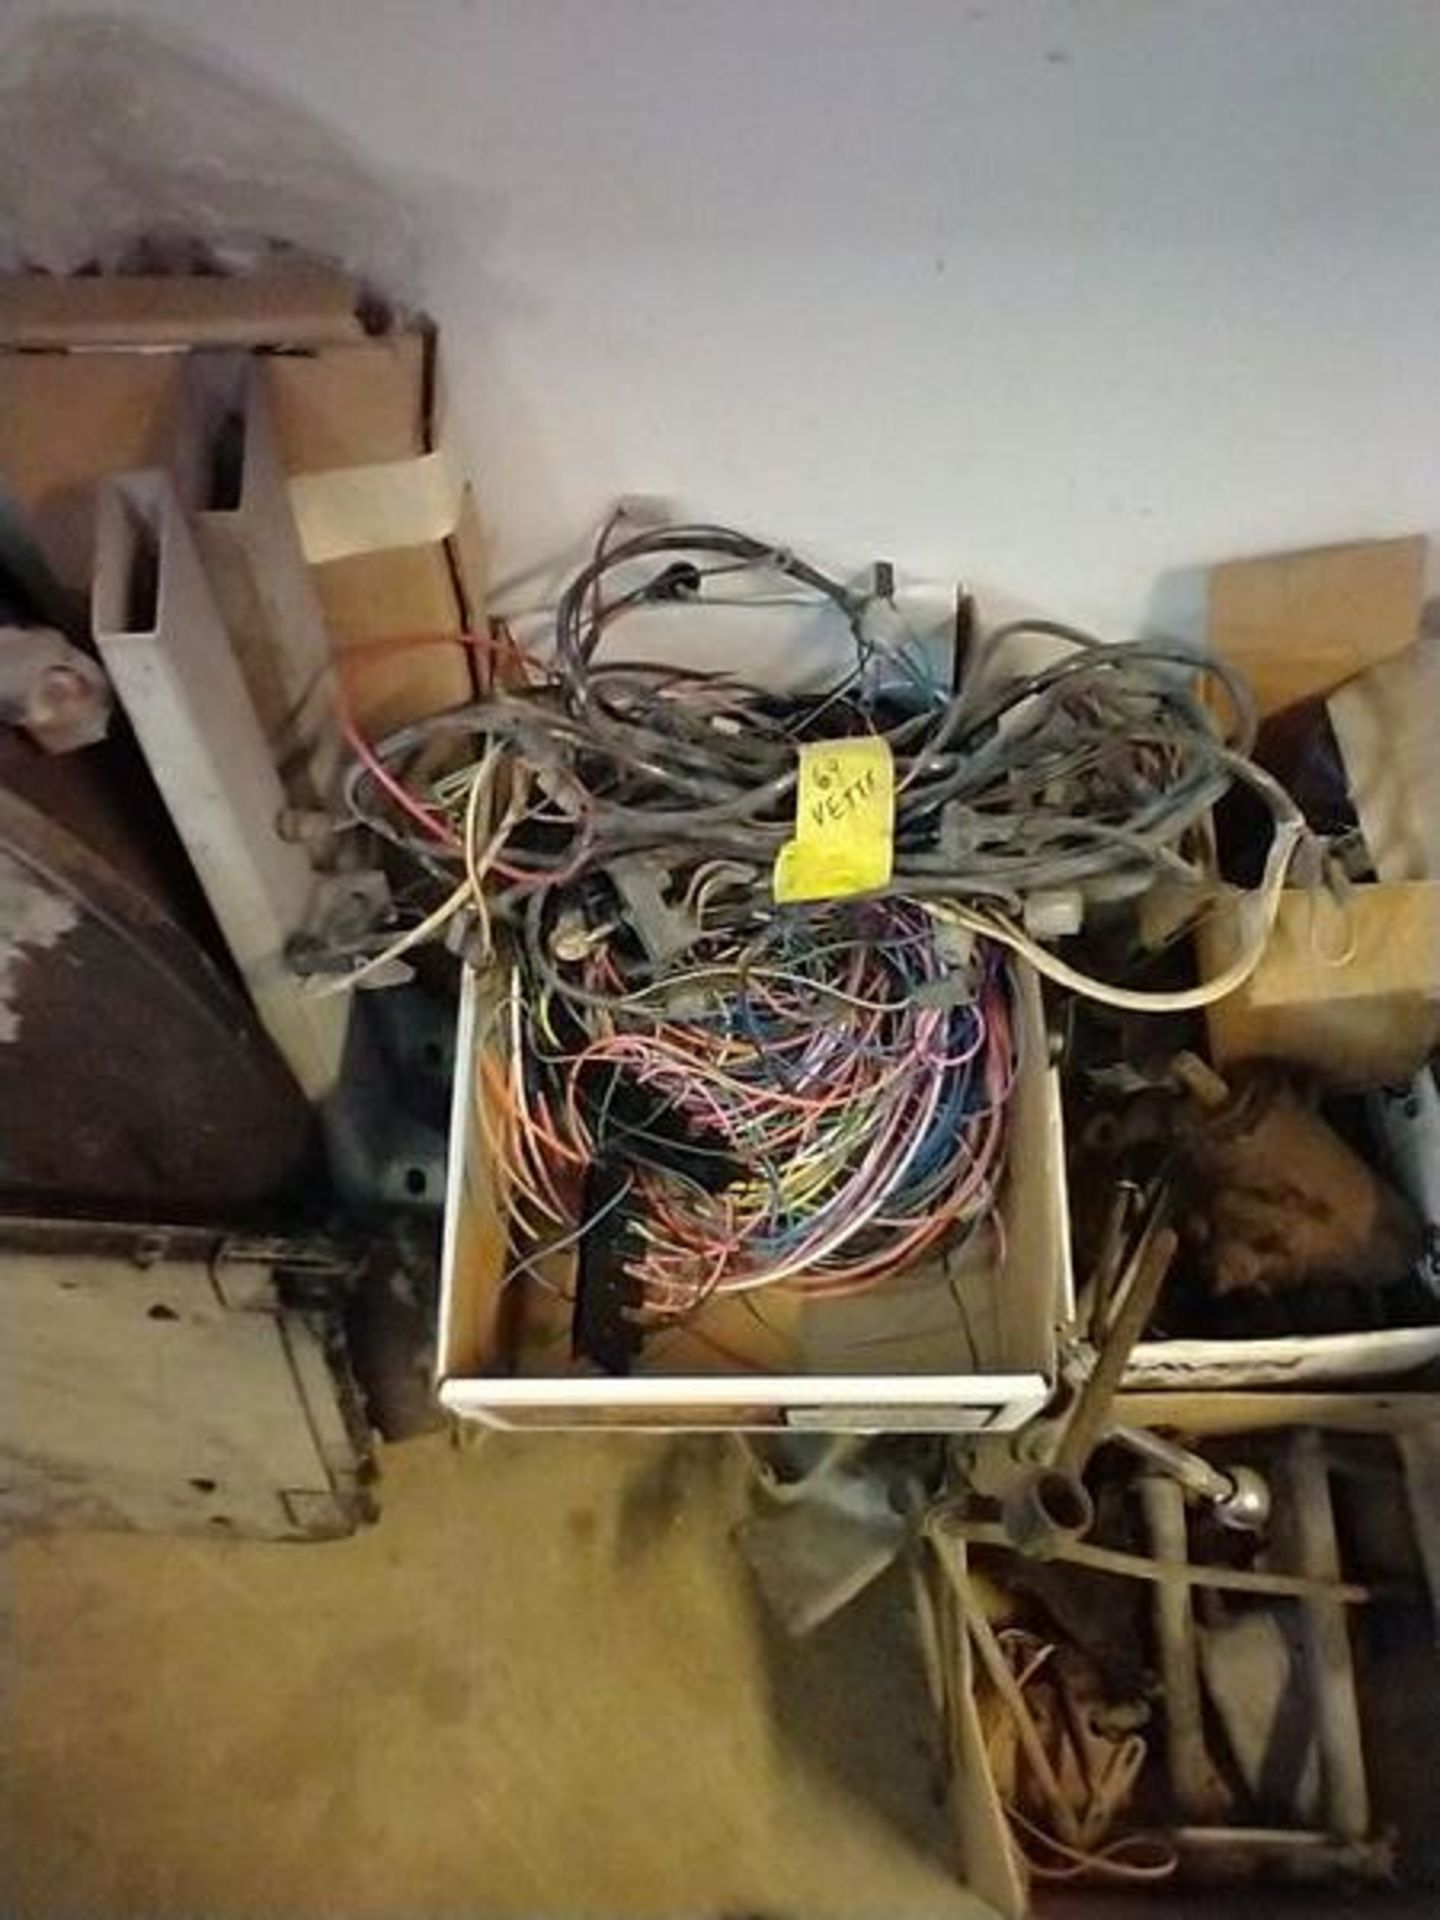 LOT OF ASSORTED CAR PARTS ON 2 SHELVES AND FLOOR - Image 18 of 23